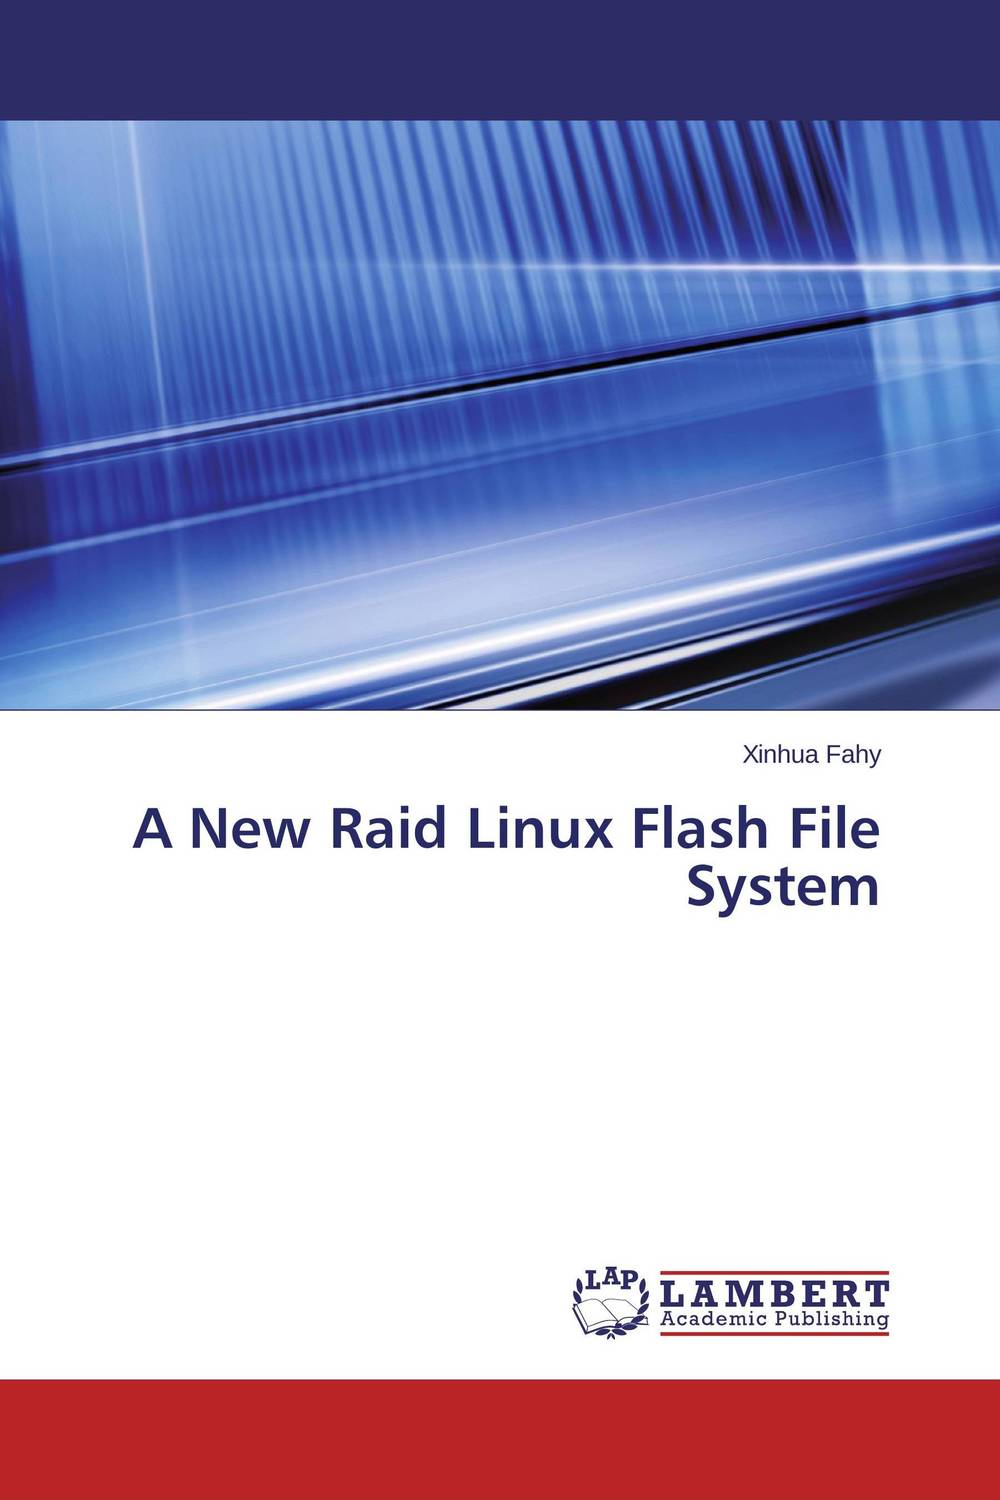 A New Raid Linux Flash File System nand flash memory disk for repair tools replace flash memory and expand the memory and unlock ipad